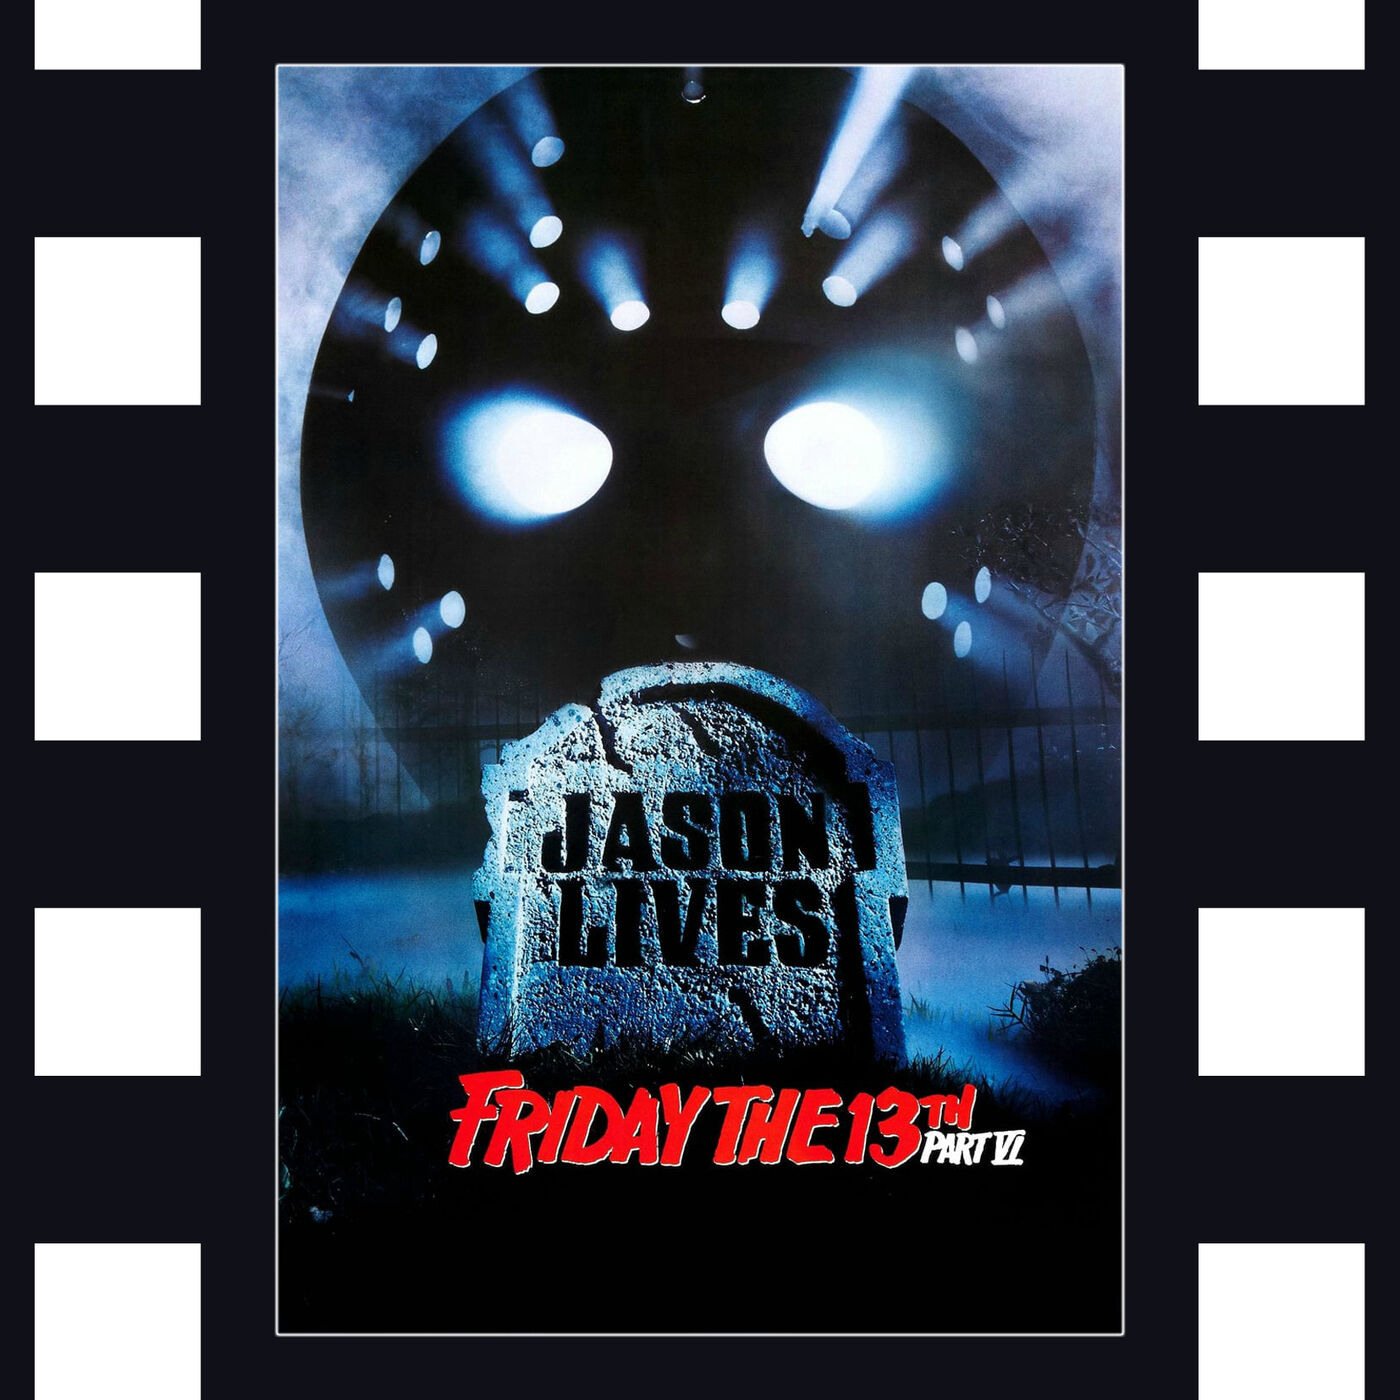 Friday the 13th Part VI: Jason Lives - Accessible and Amazing